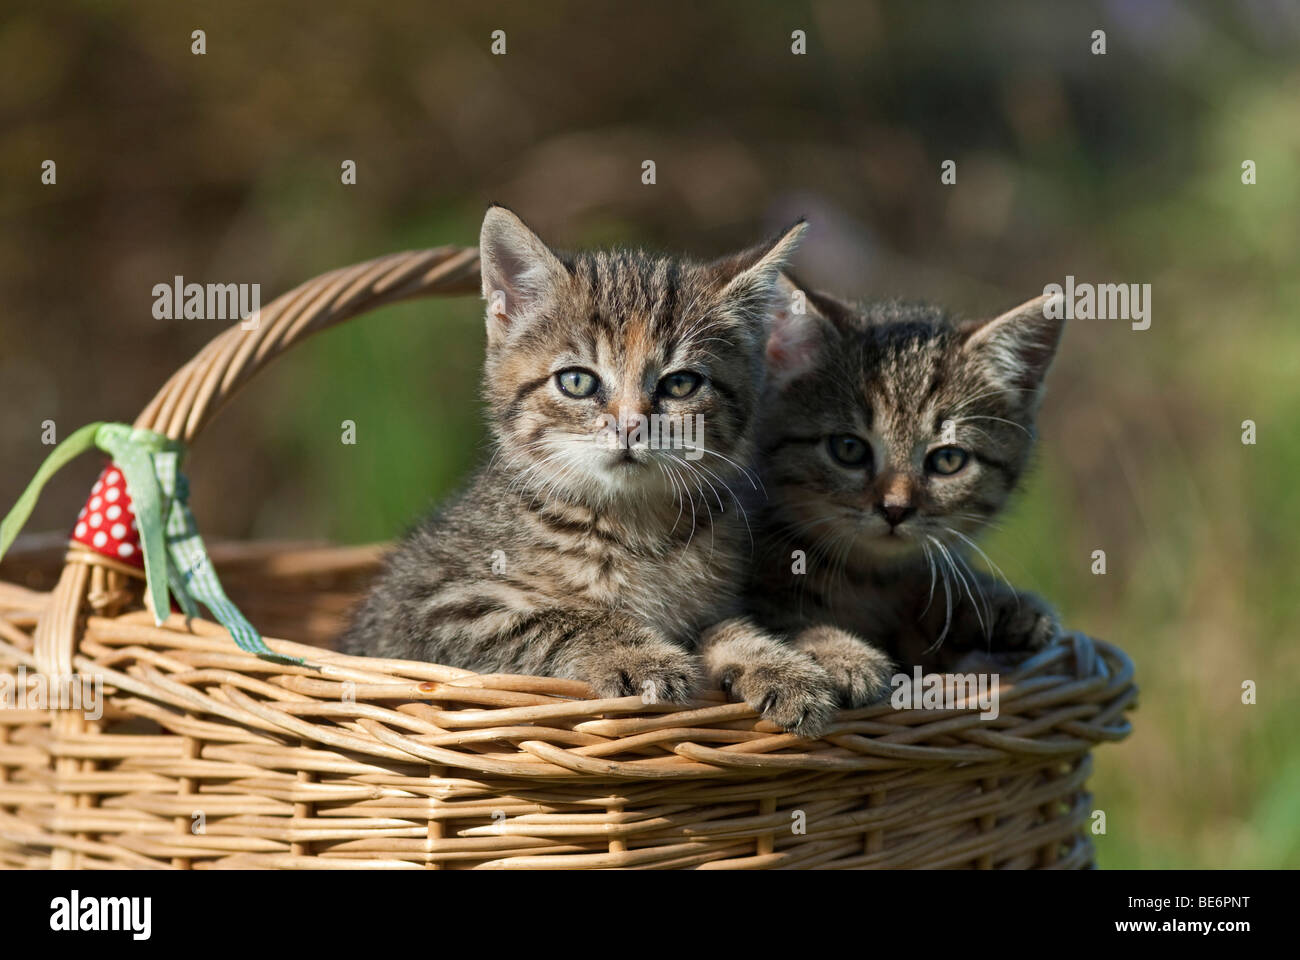 Two domestic cats, kittens in a wicker basket Stock Photo